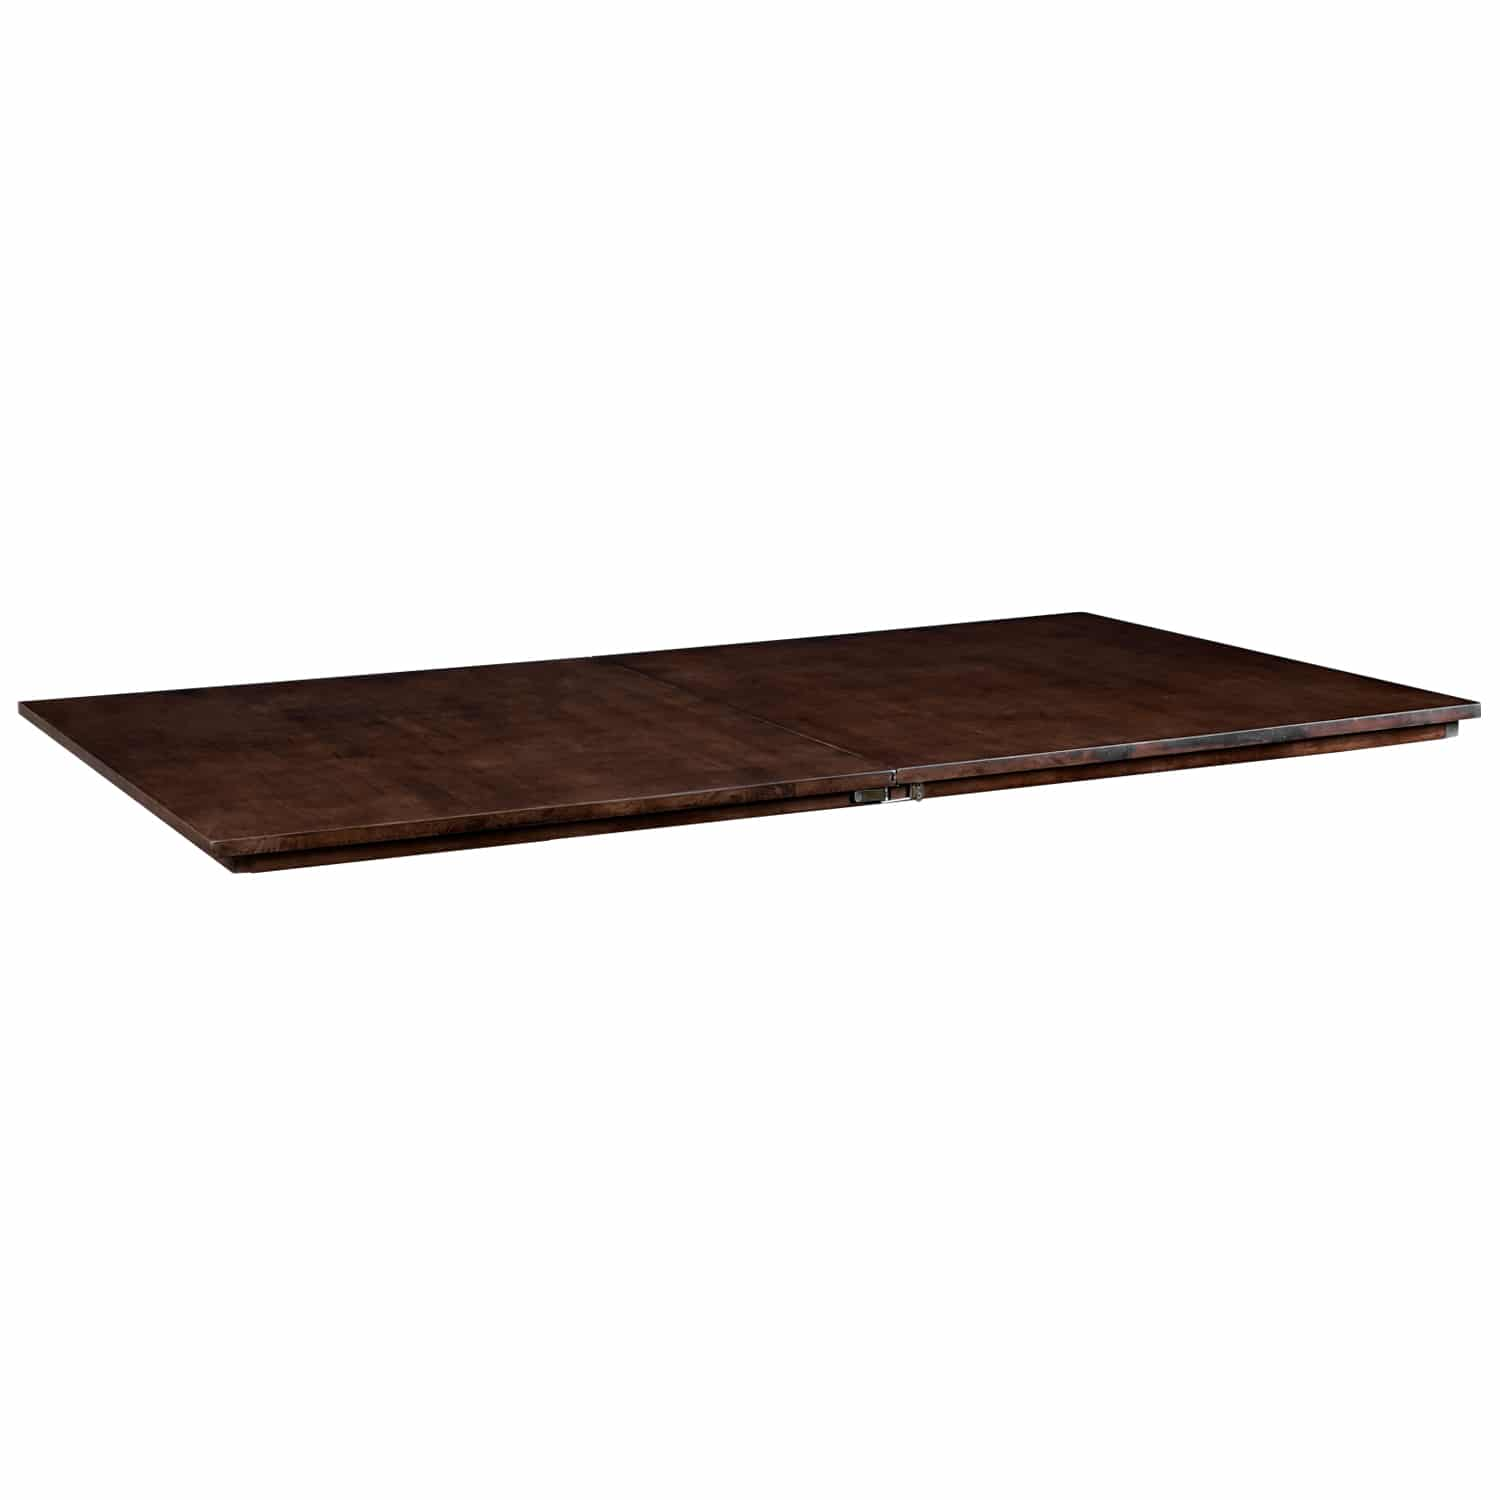 The Nilo Dining topper shown in dark walnut stain